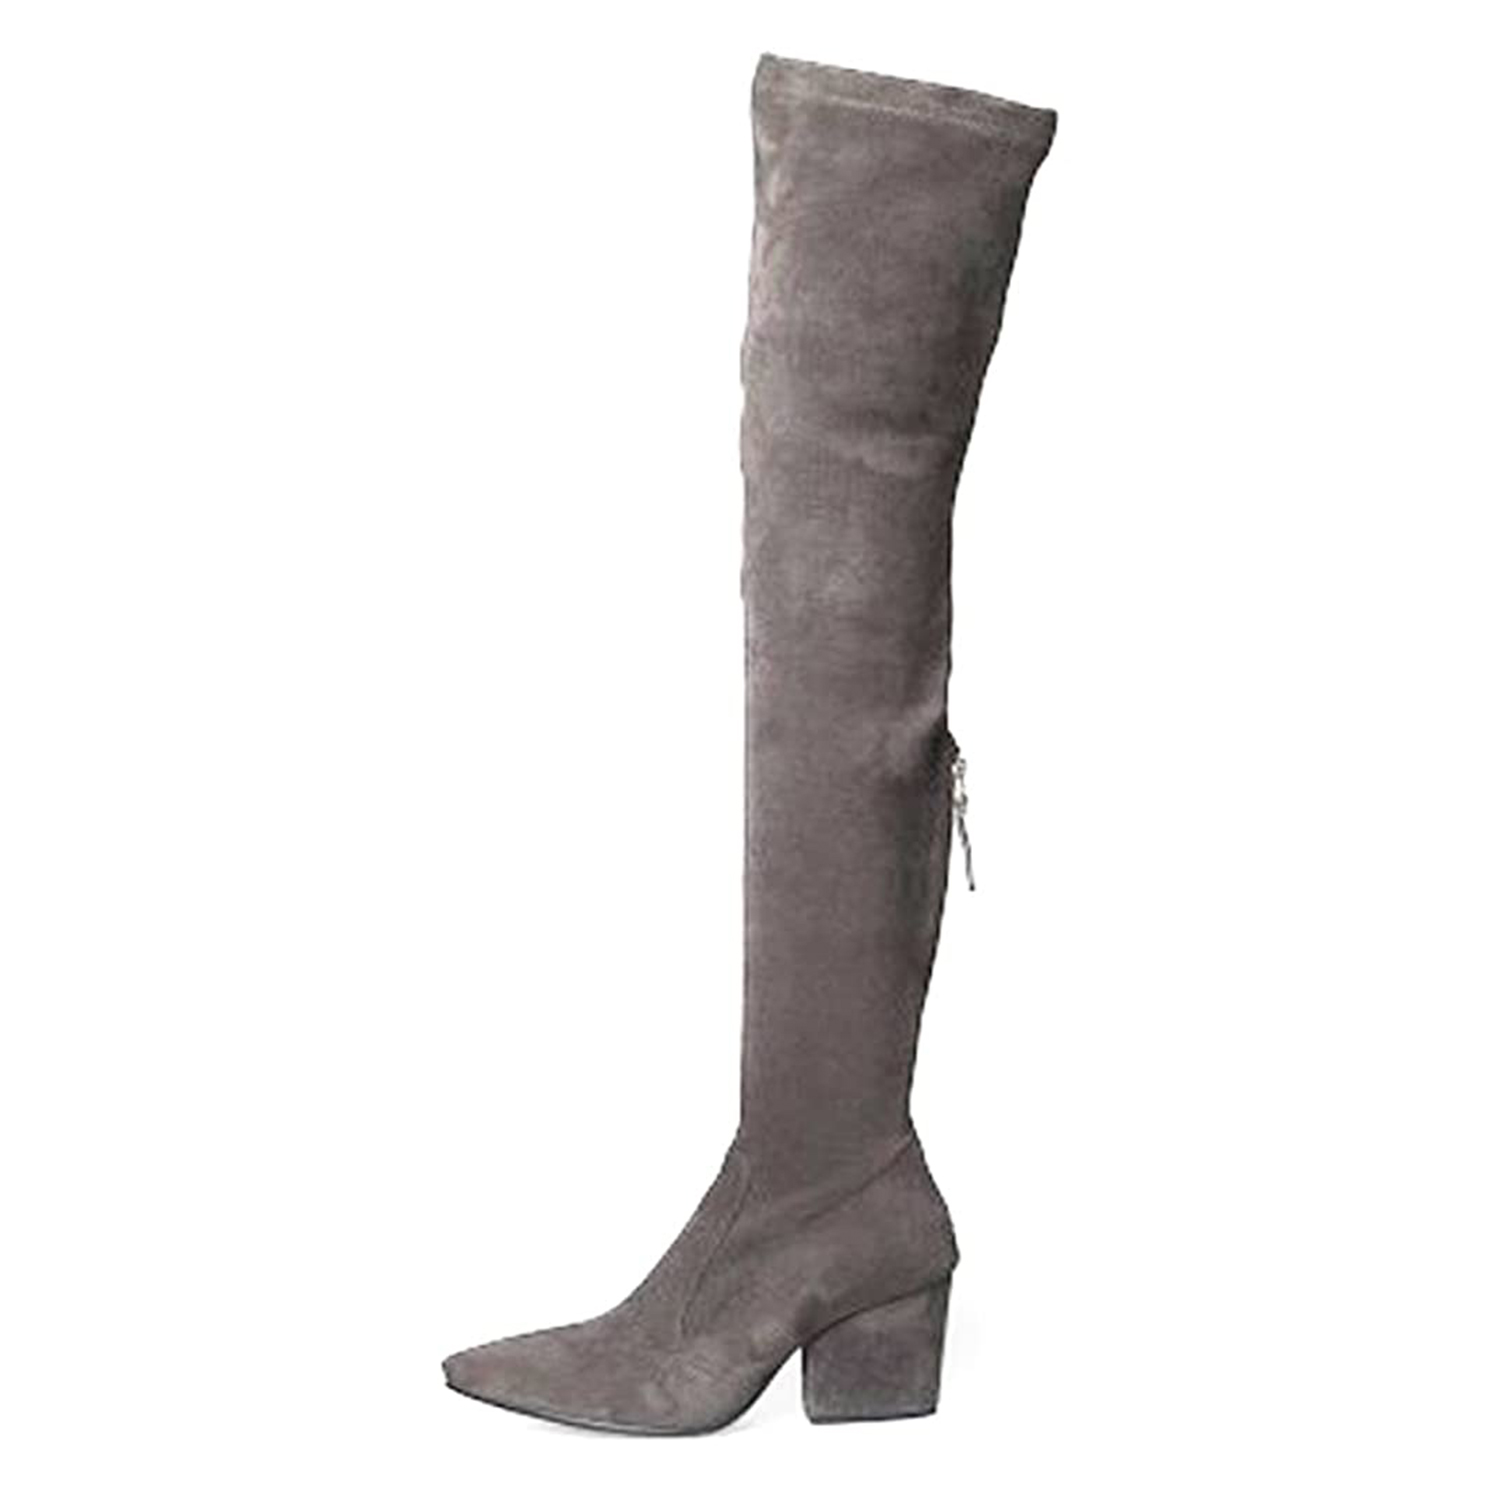 N.N.G Women Boots Winter Over Knee Long Boots Fashion Boots Heels